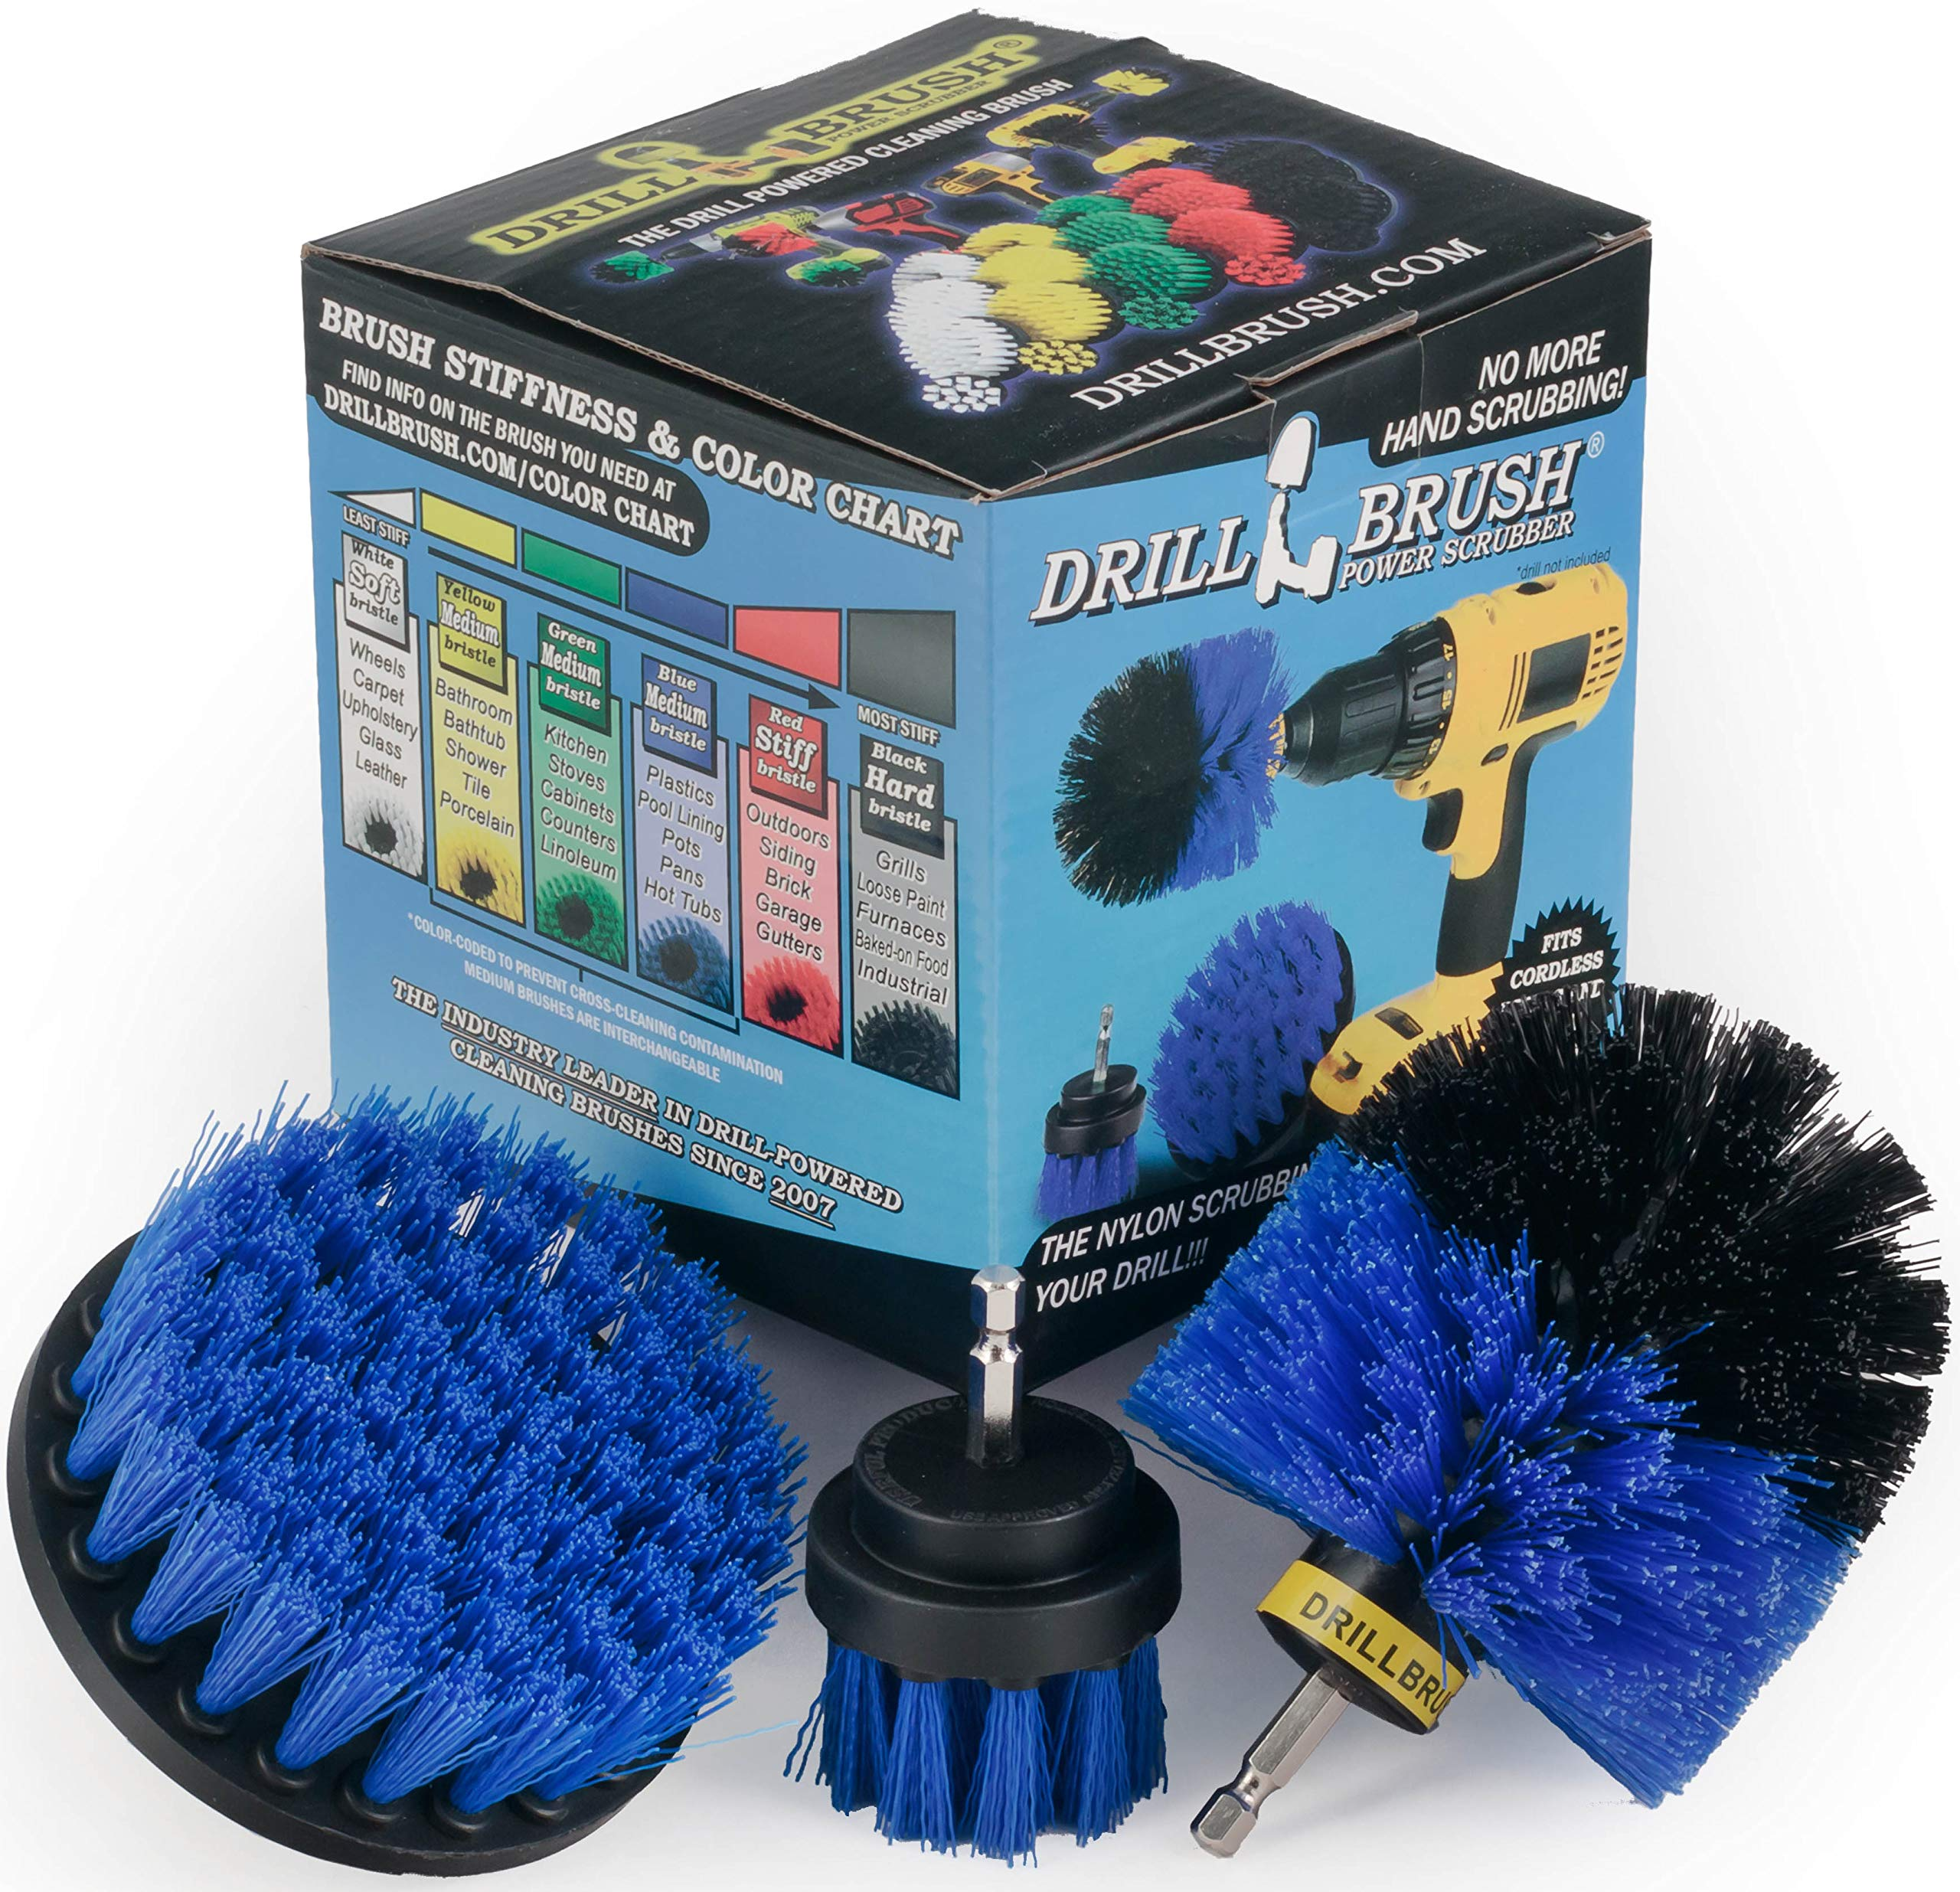 Boat Accessories - Kayak - Cleaning Supplies - Drill Brush - Rotary Cleaning Brushes for Boats And Watercraft - Canoes, Bass Boat - Fiberglass, Aluminum, Gel Coat, Wood, Painted - Hull and Deck